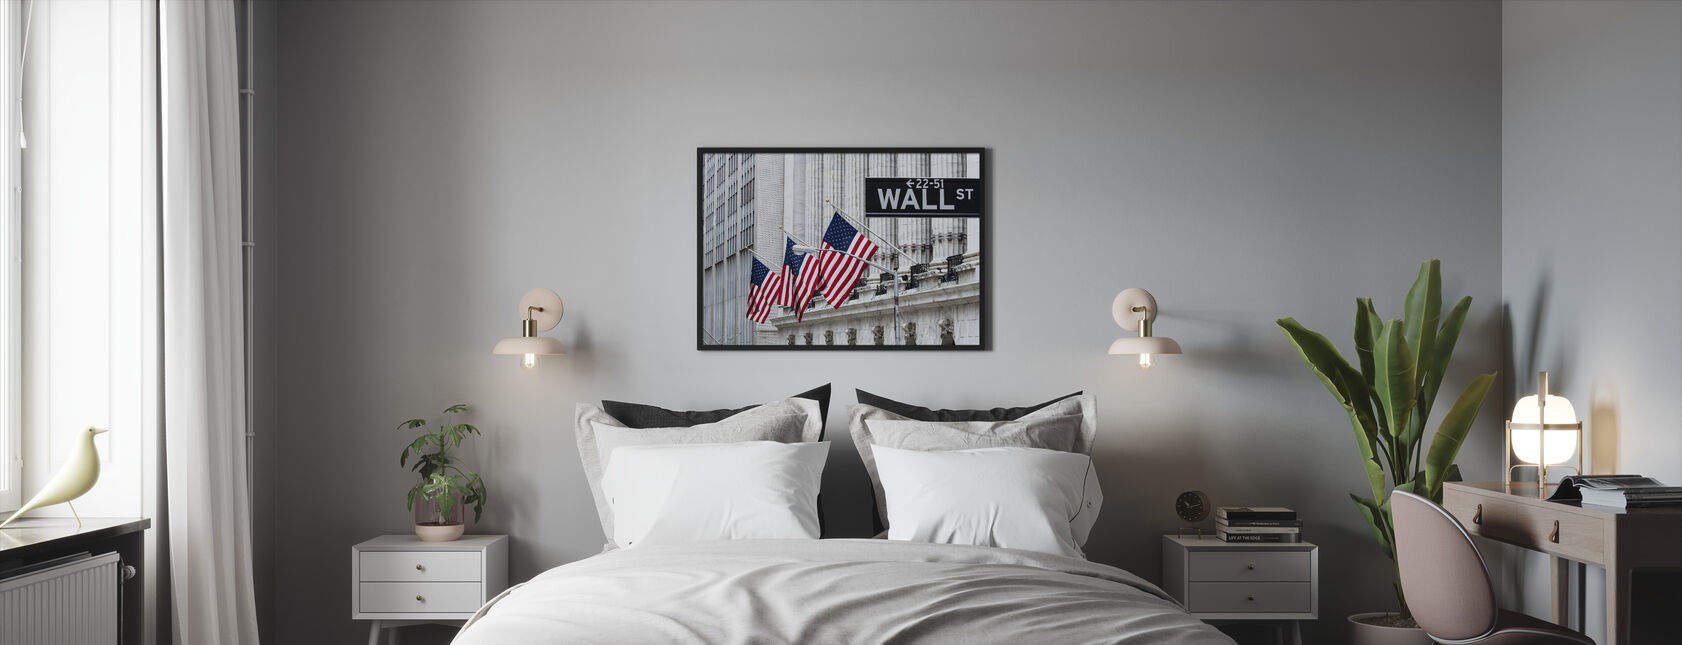 New York Wall Street - Framed print - Bedroom